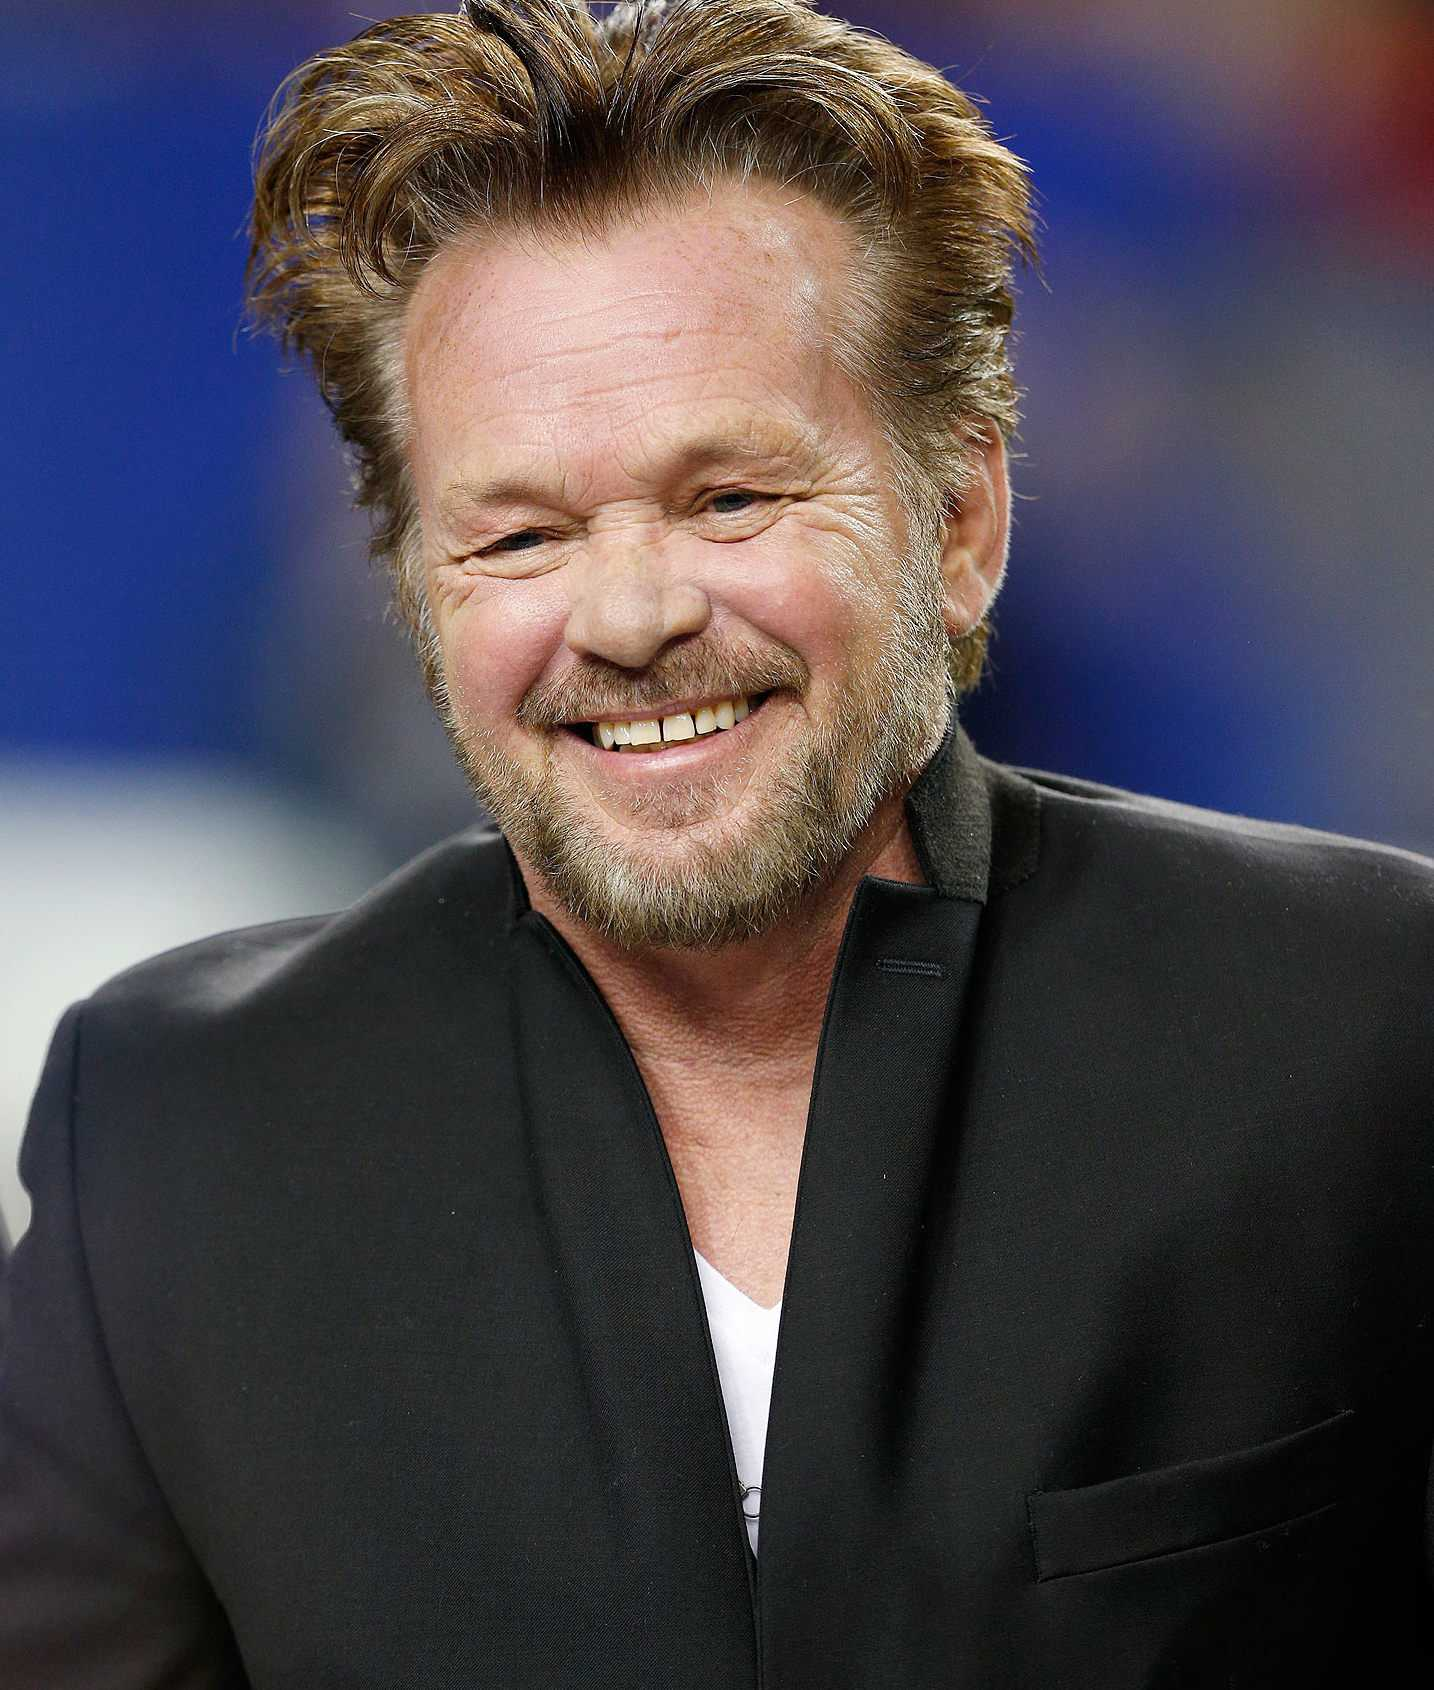 John Mellencamp Famous For